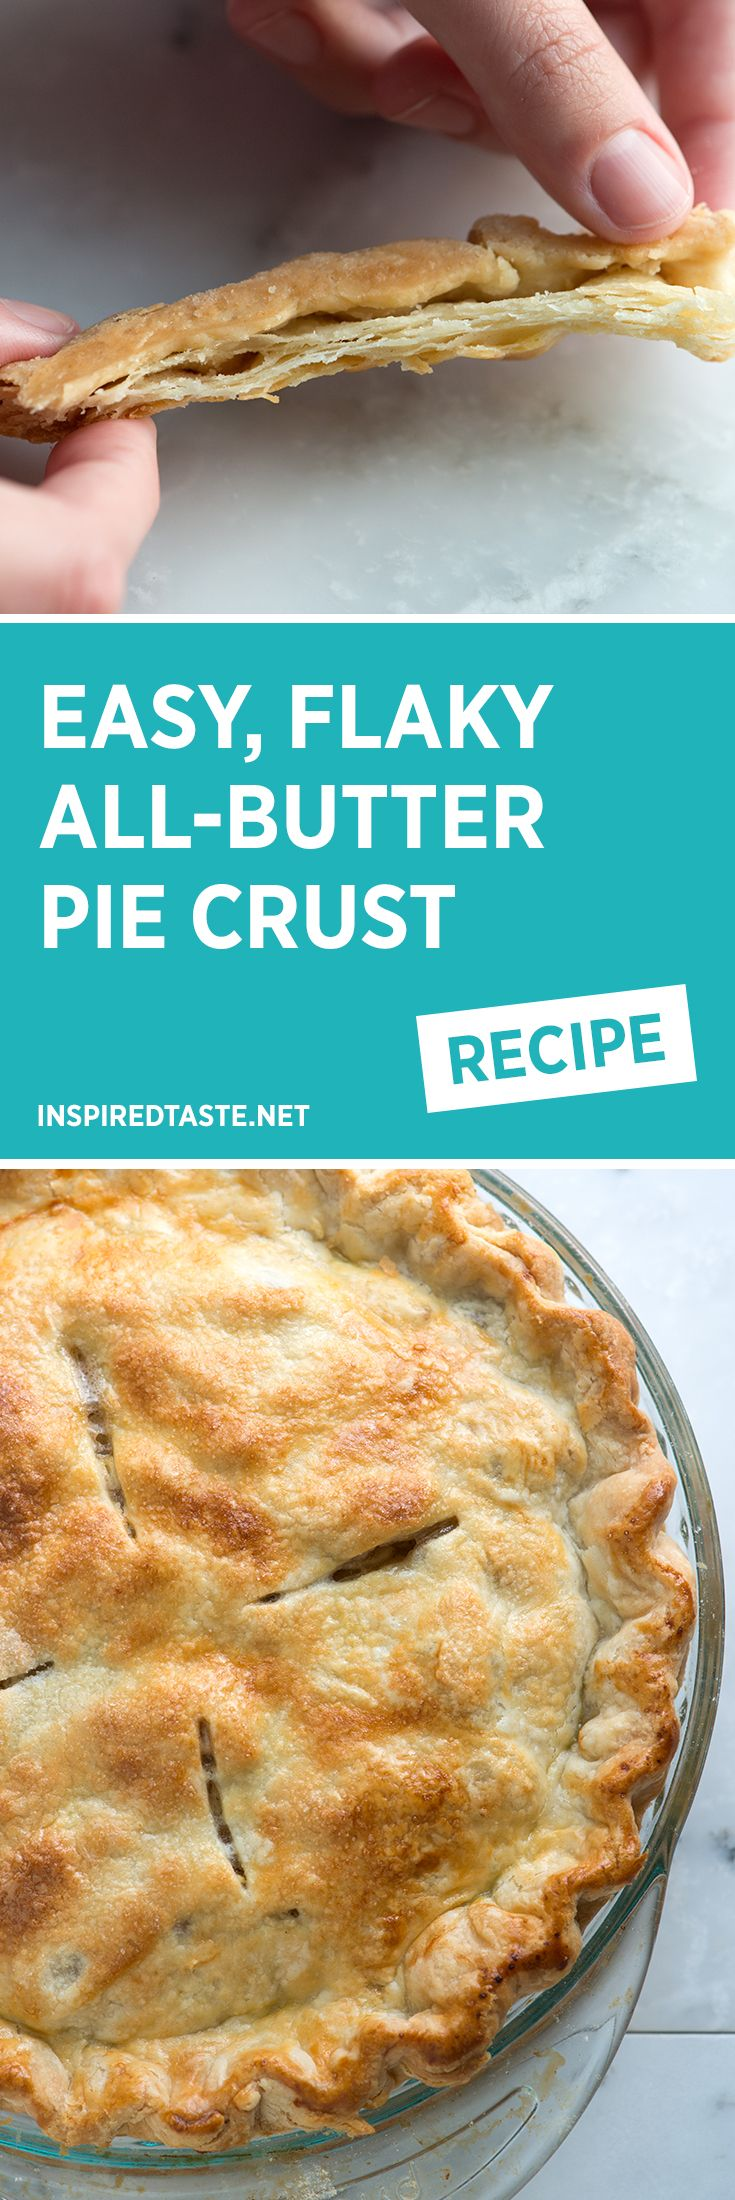 How to make our easy butter pie crust recipe that makes consistent flaky pie dough every time.